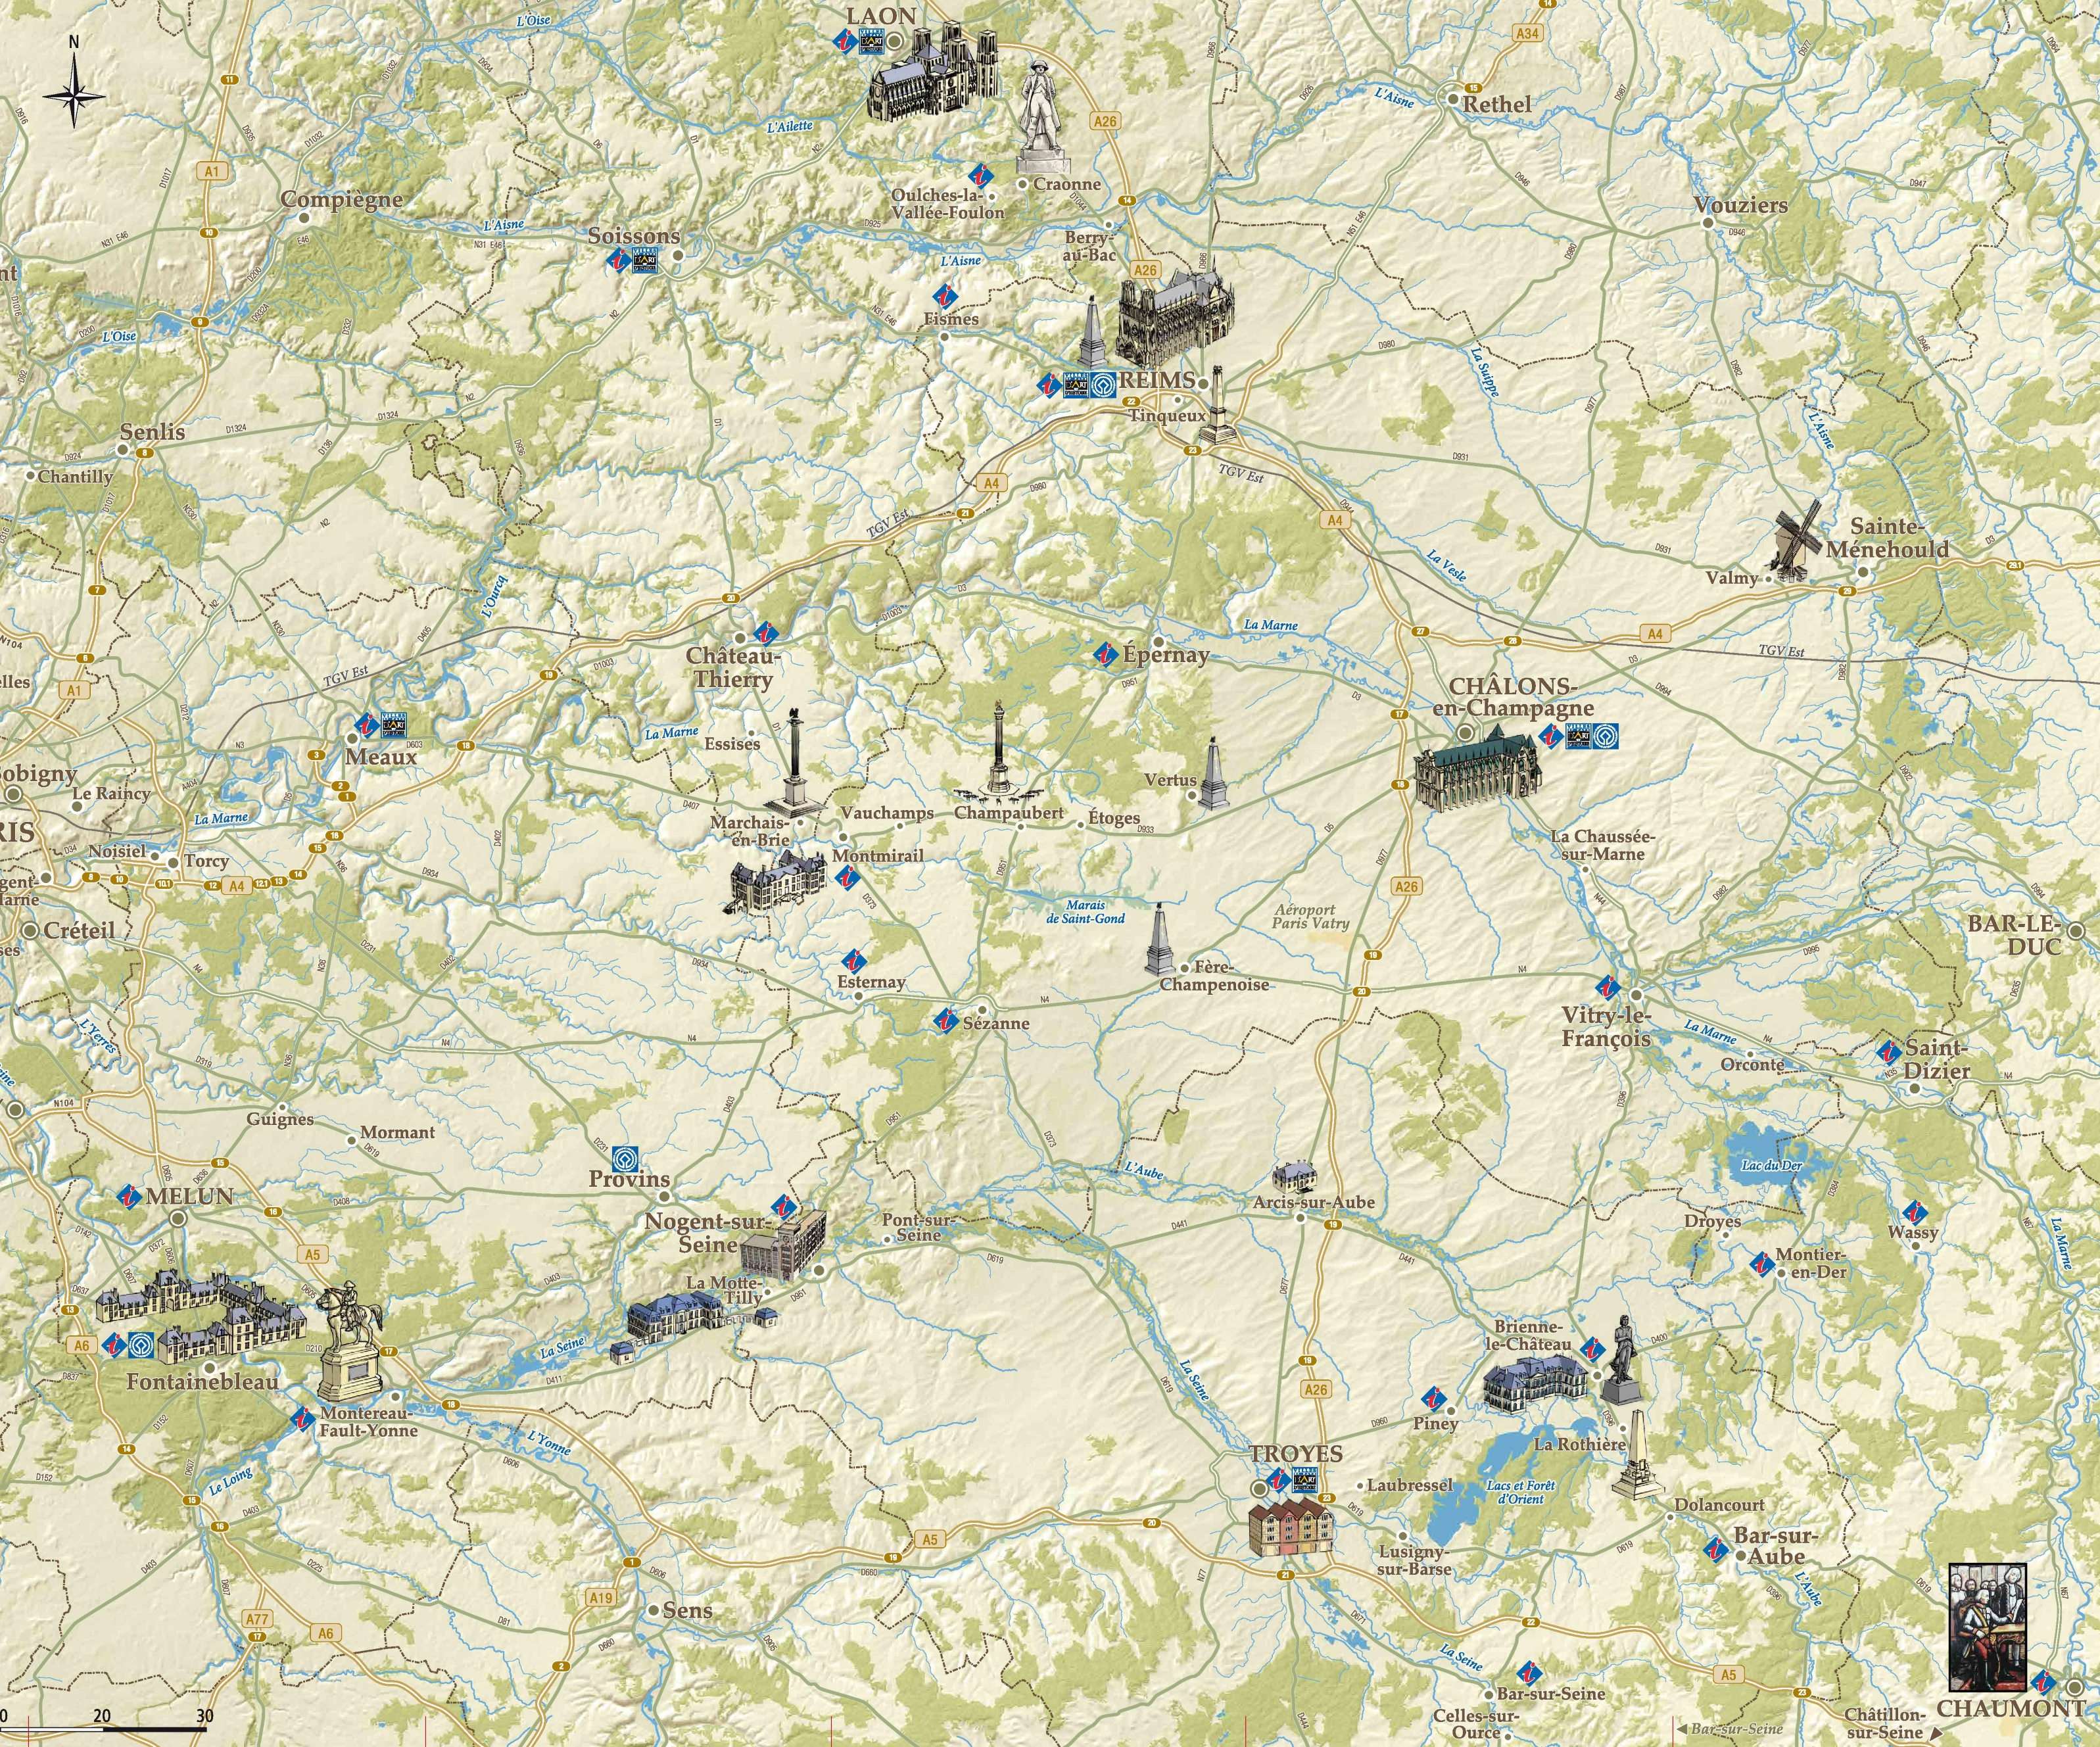 ChampagneArdenne tourist map